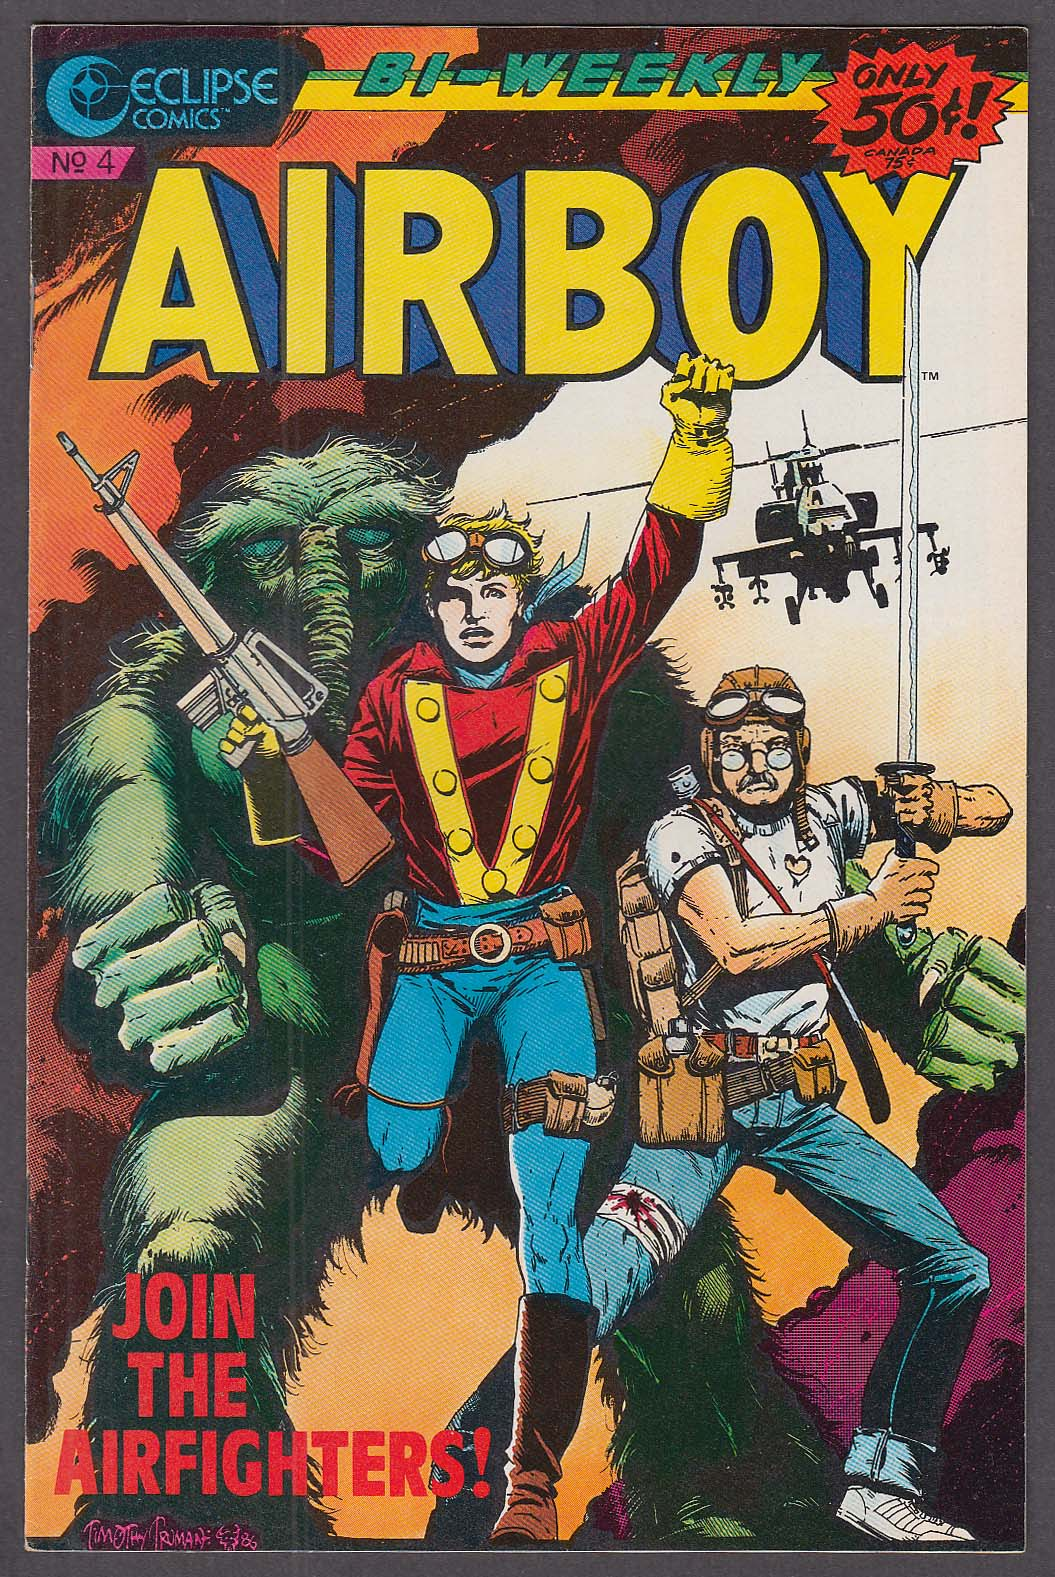 AIRBOY #4 Eclipse comic book 8/26 1986